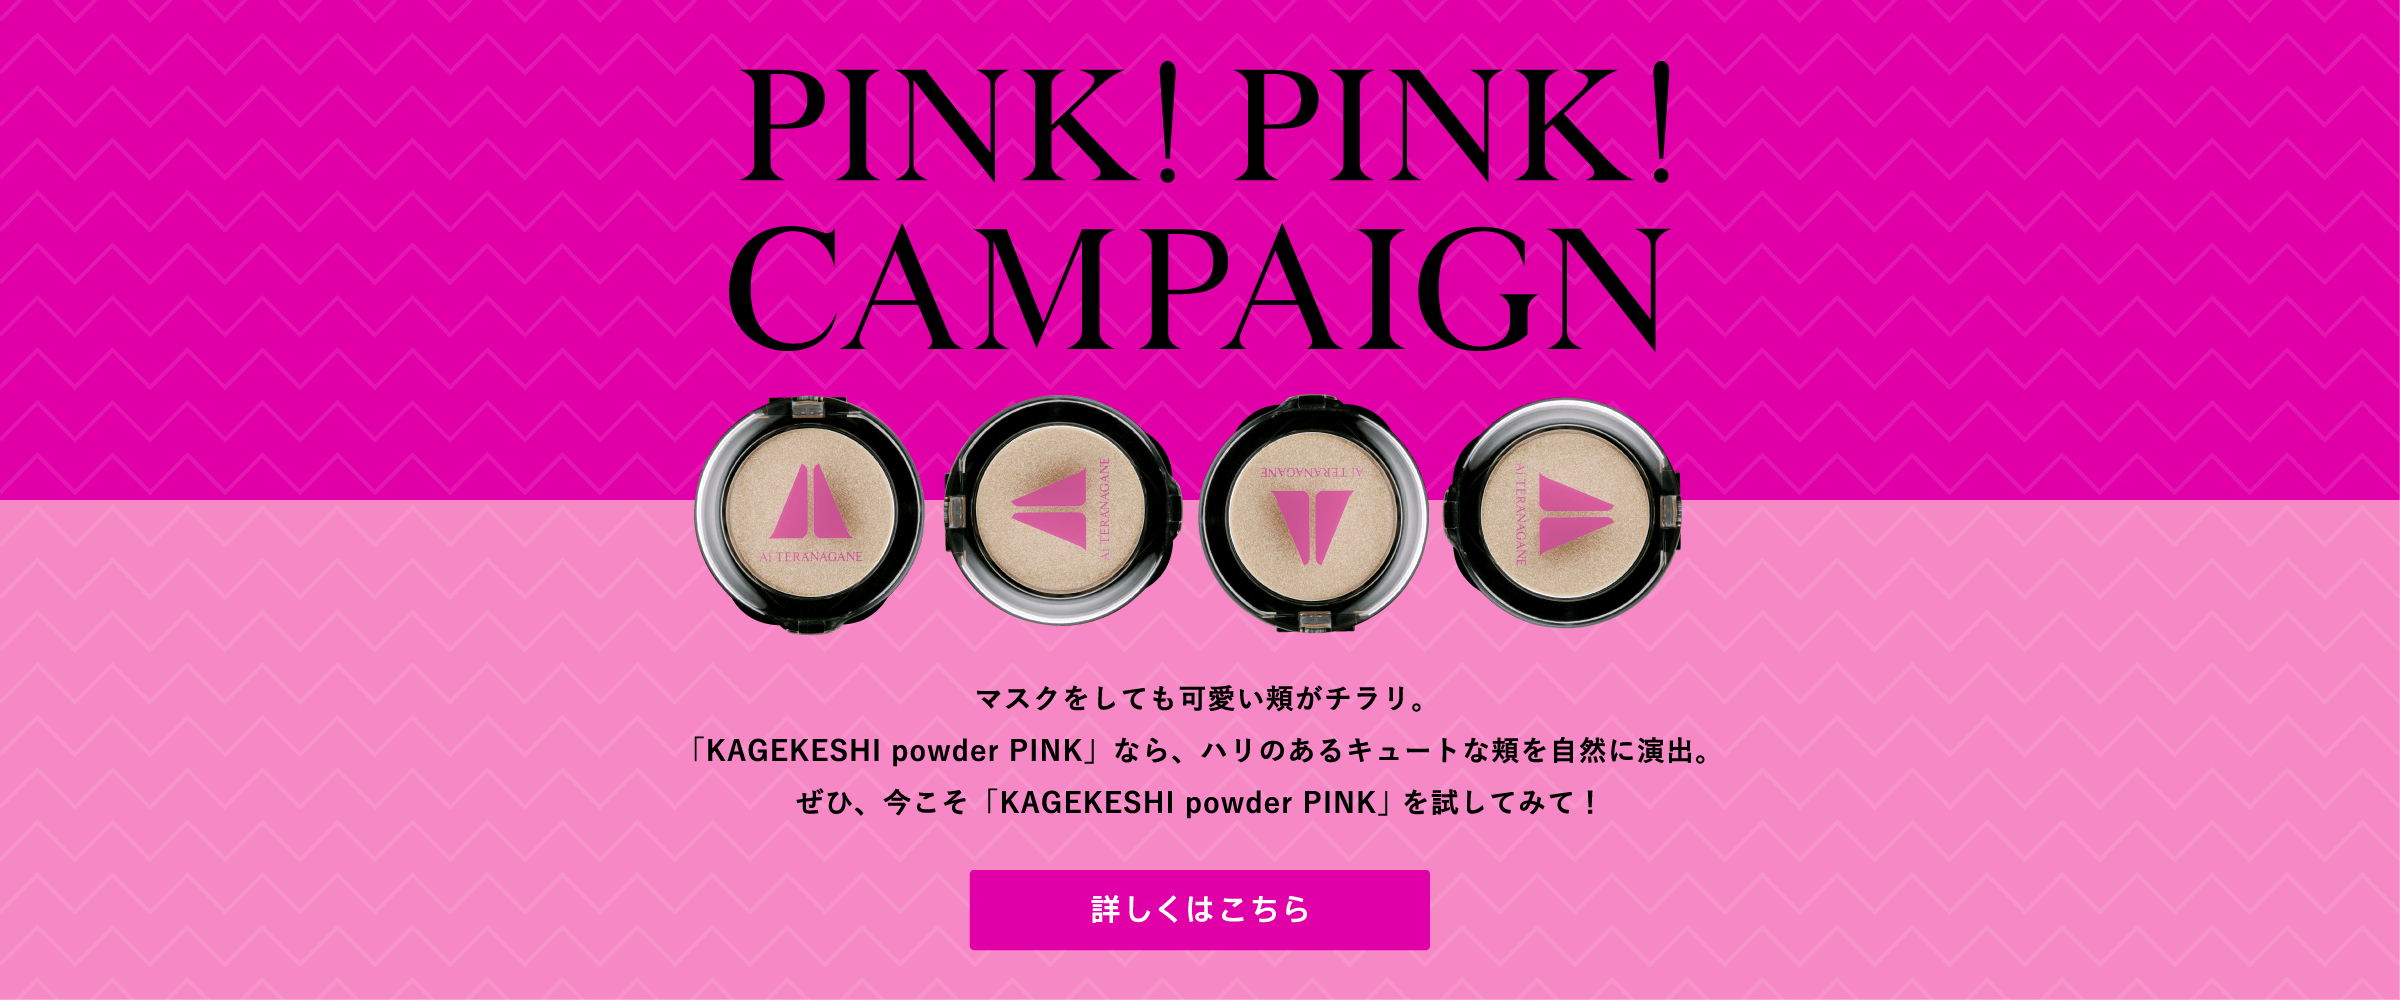 PINK PINK CAMPAIGN